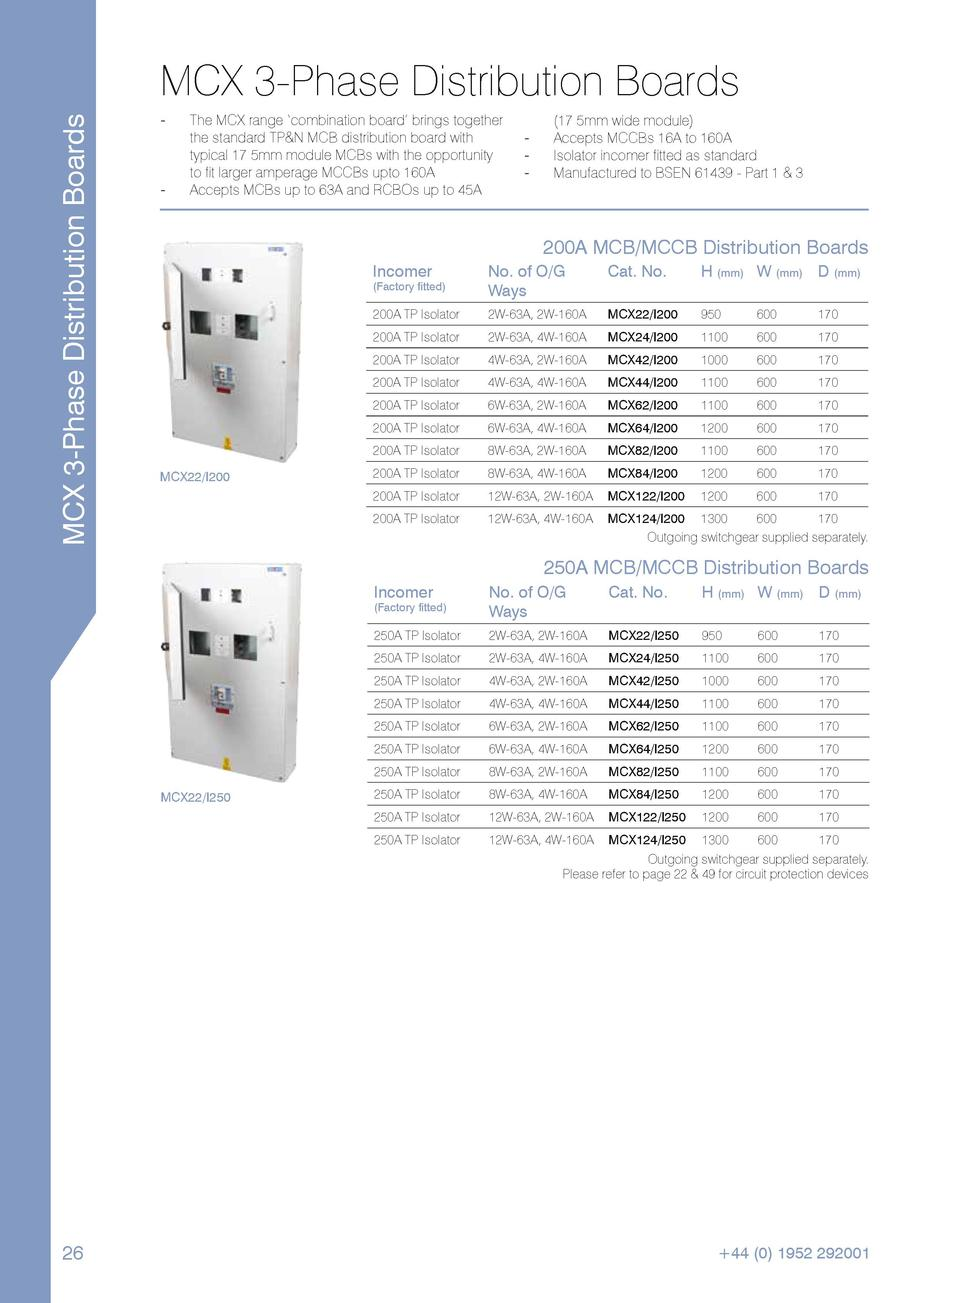 Imd Catalogue Threephase Dual Voltage Motor Wiring Middle Tn Rses Mcx 3 Phase Distribution Boards